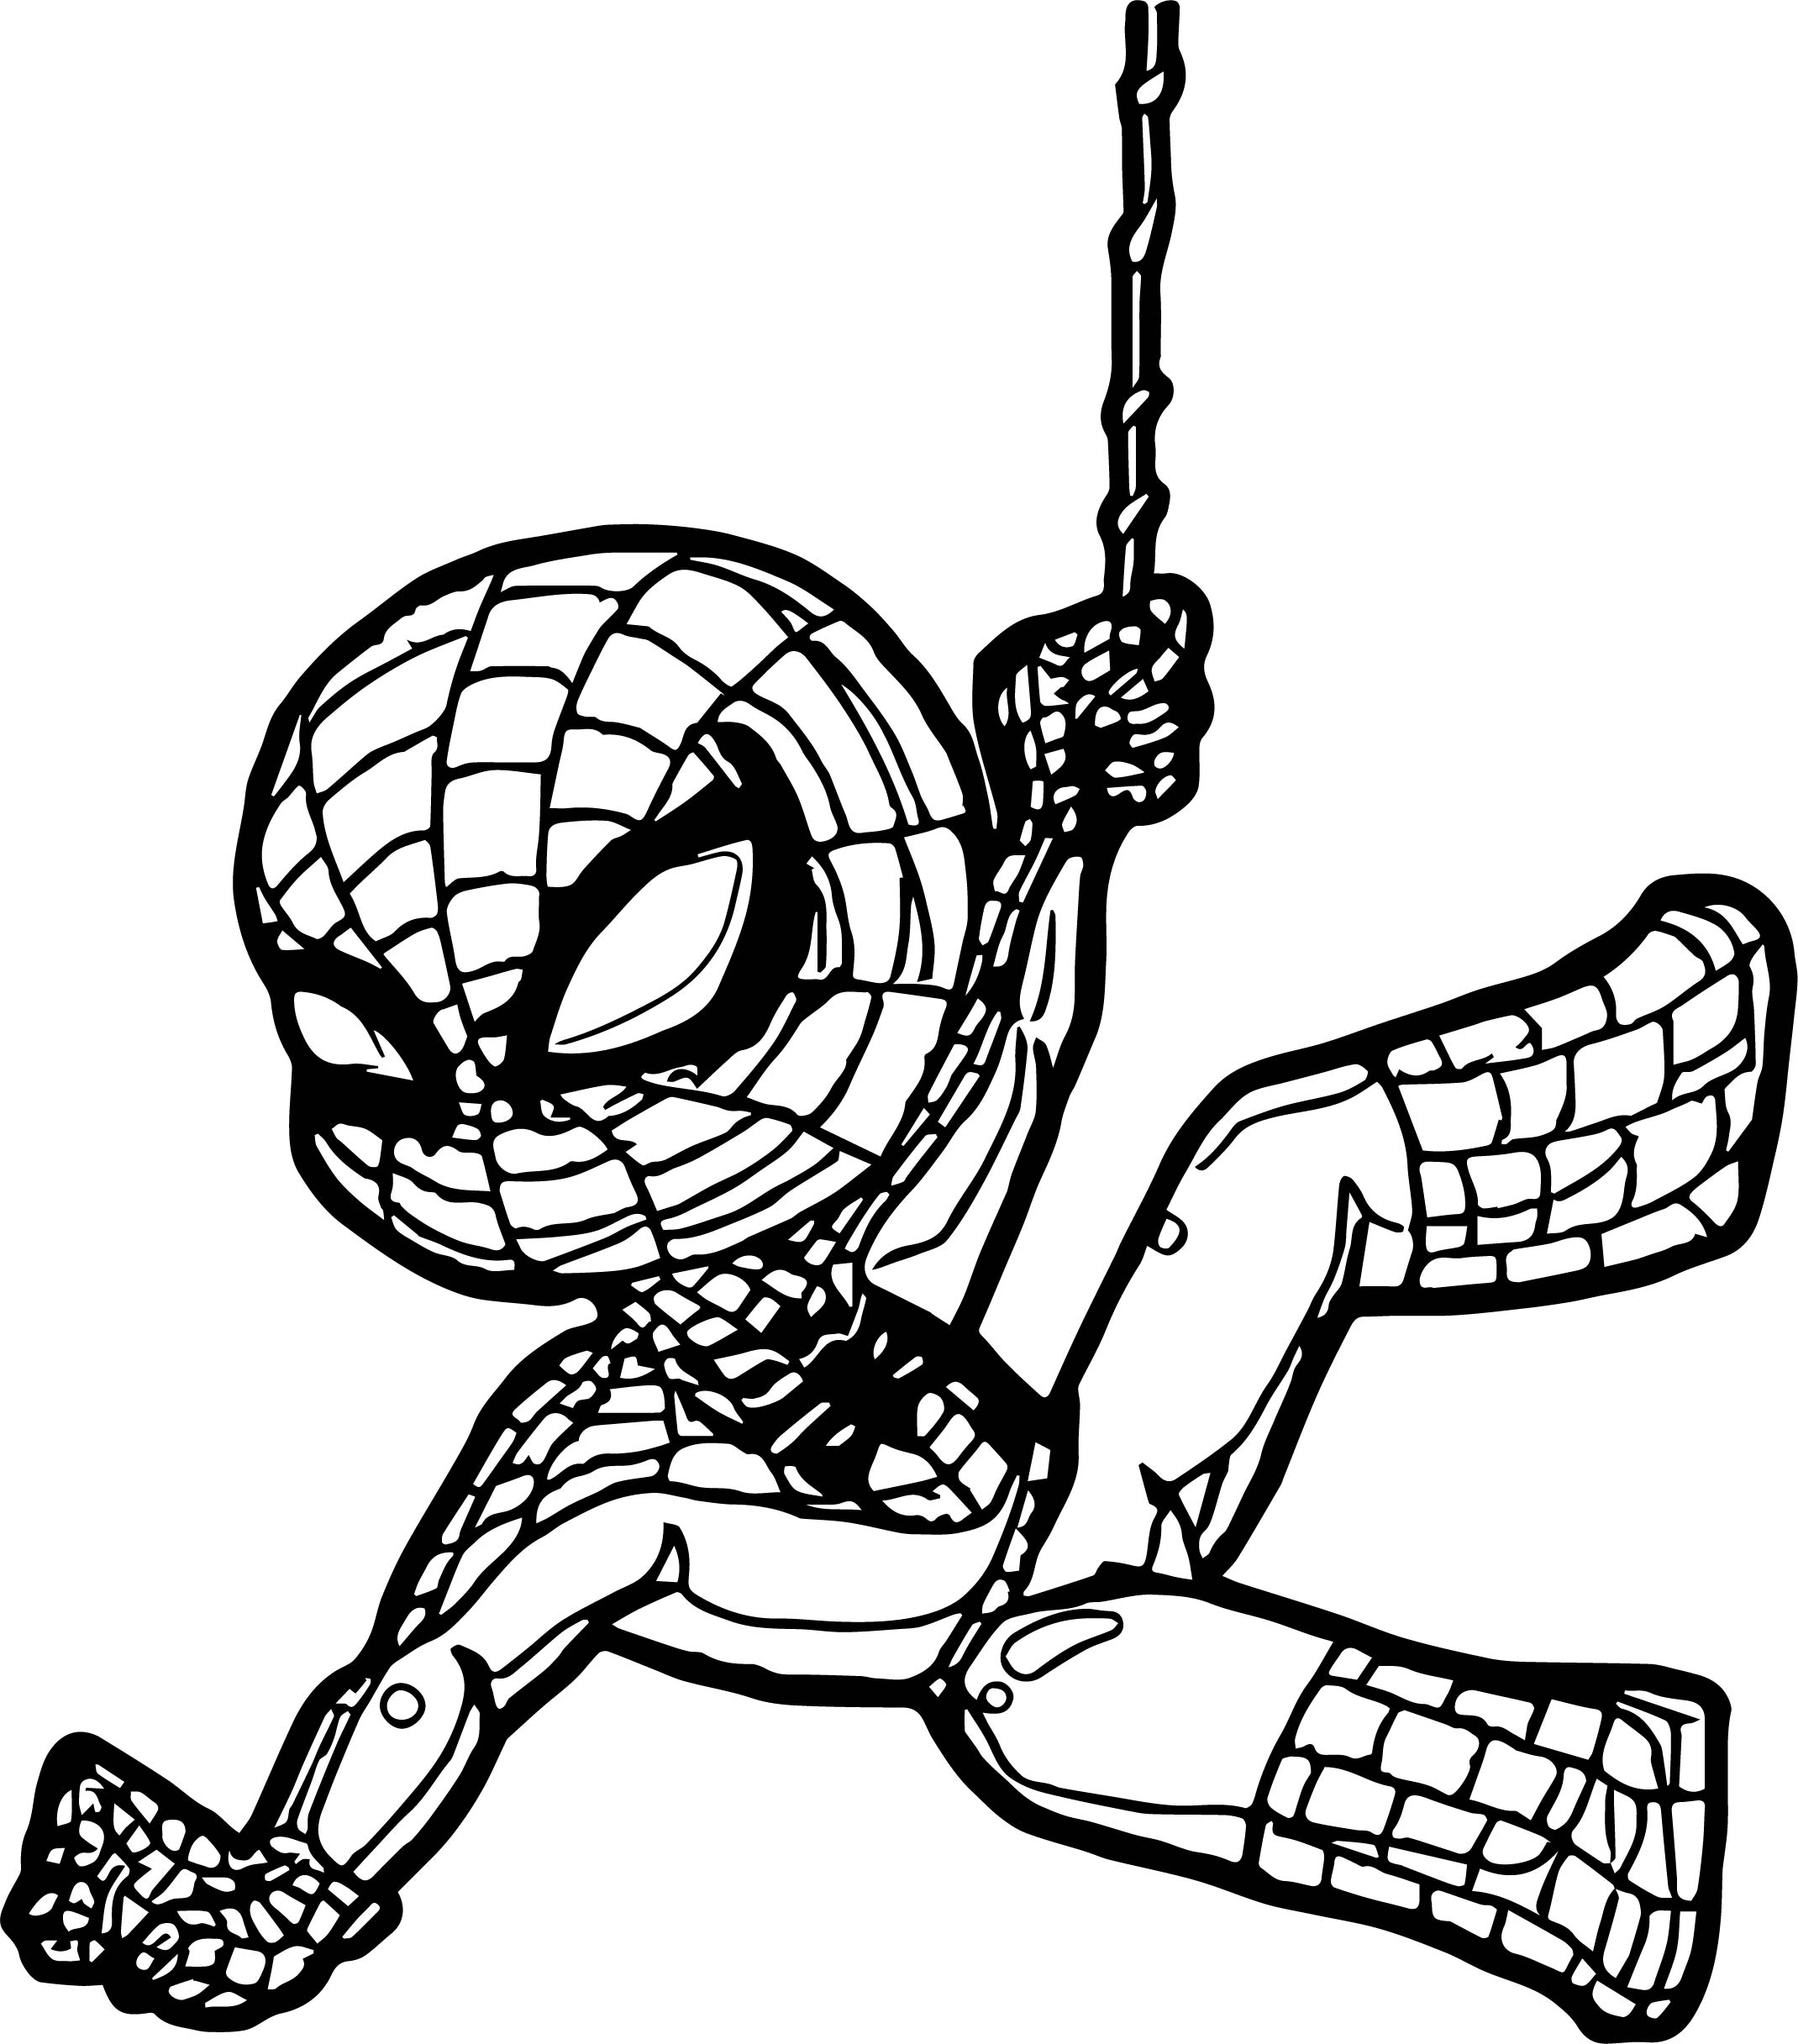 coloring sheet spiderman coloring pages spiderman colouring pages 28 topcoloringpagesnet pages coloring spiderman sheet coloring